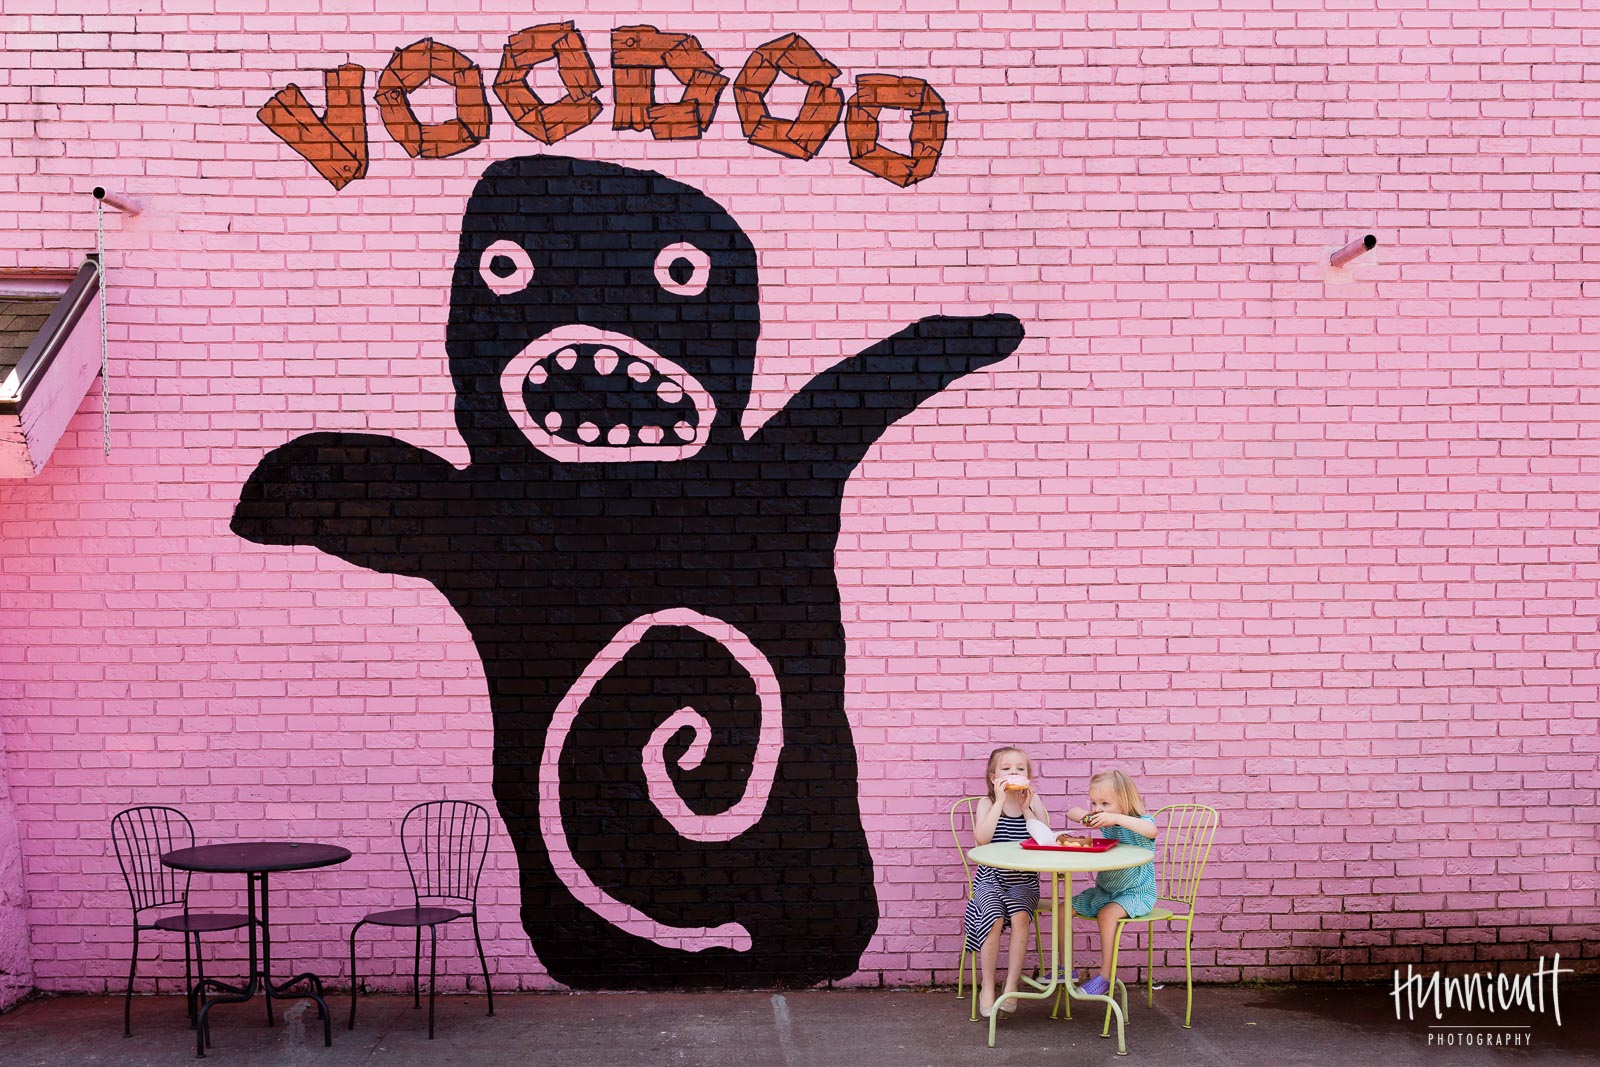 sisters enjoying donuts at voodoo by pink wall in portland by Rebecca Hunnicutt Farren